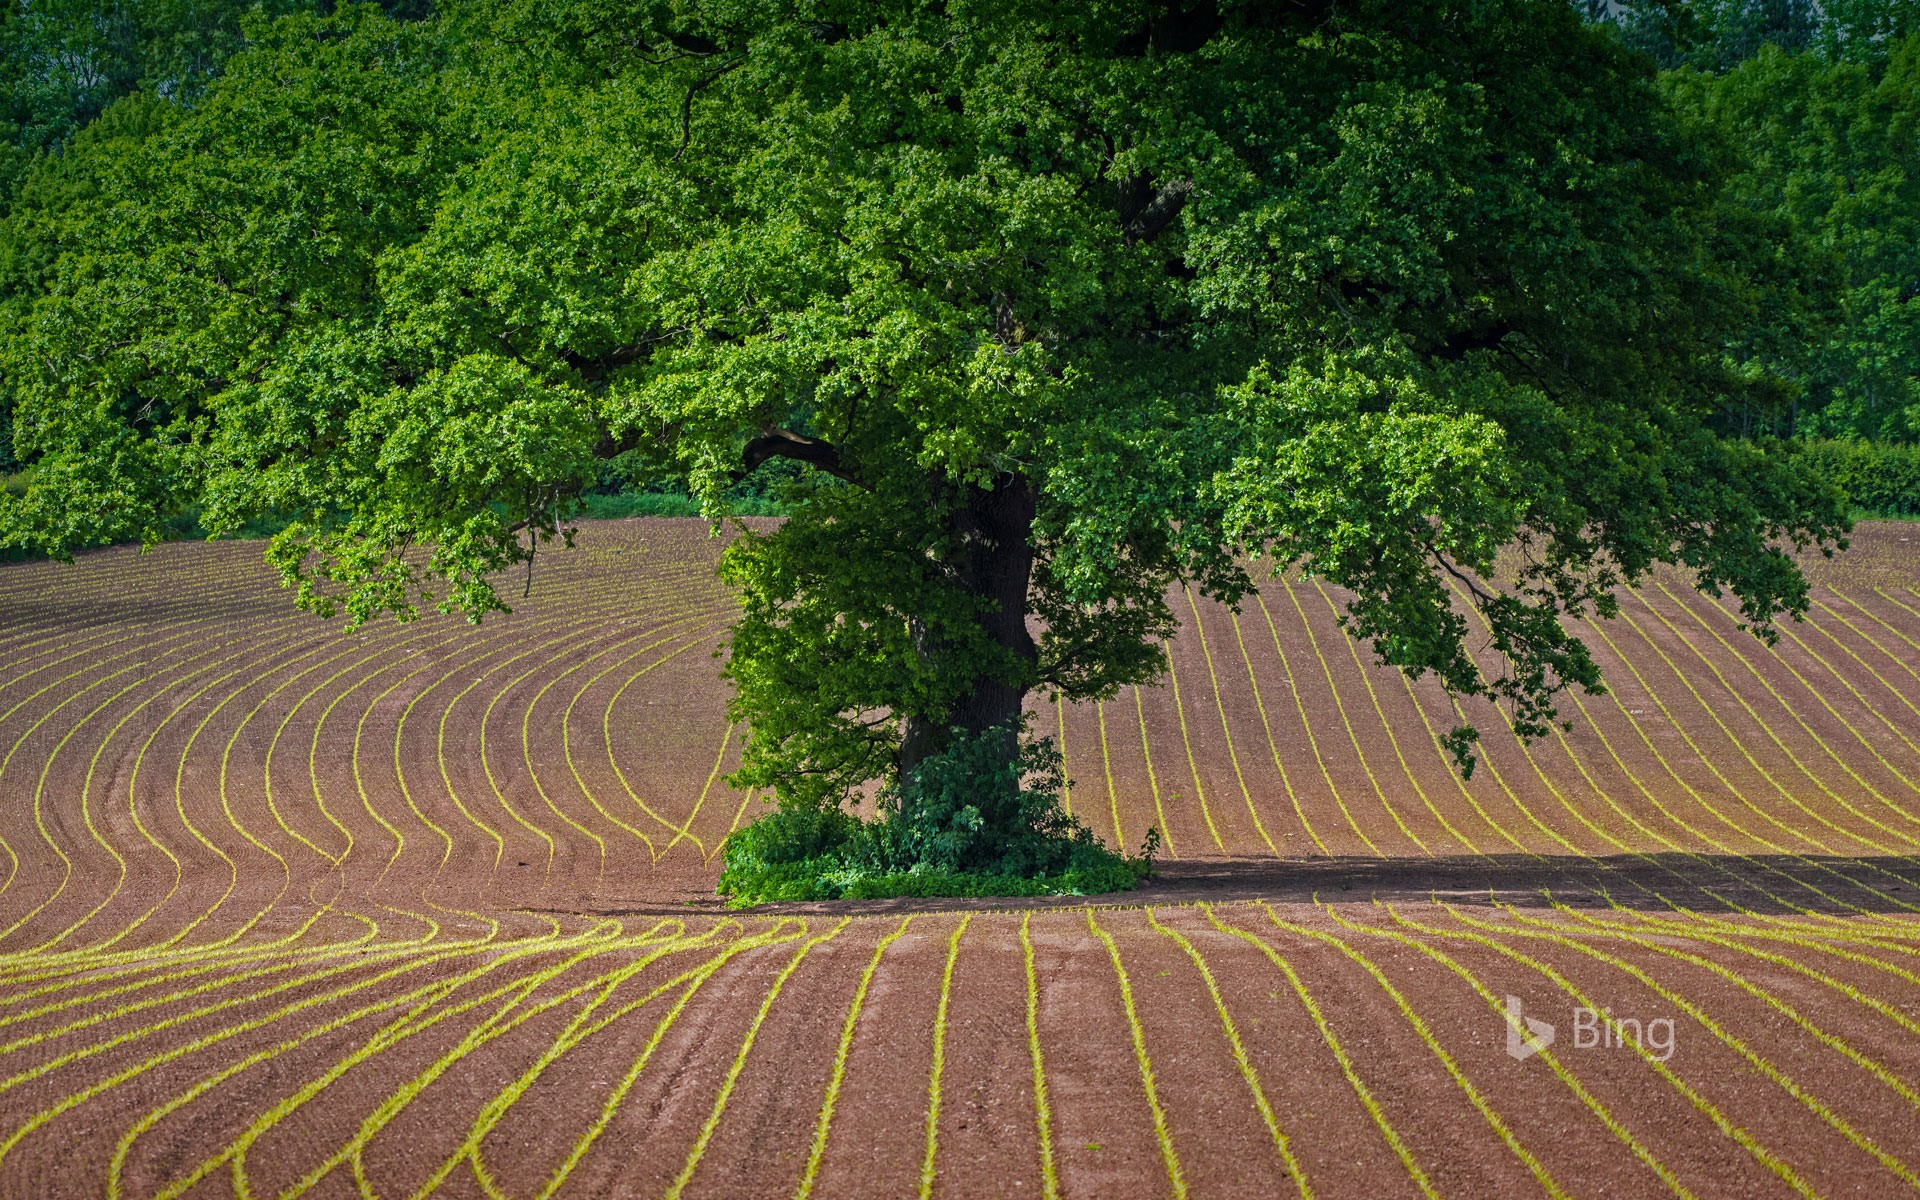 English oak tree in a cultivated field in Monmouthshire, Wales